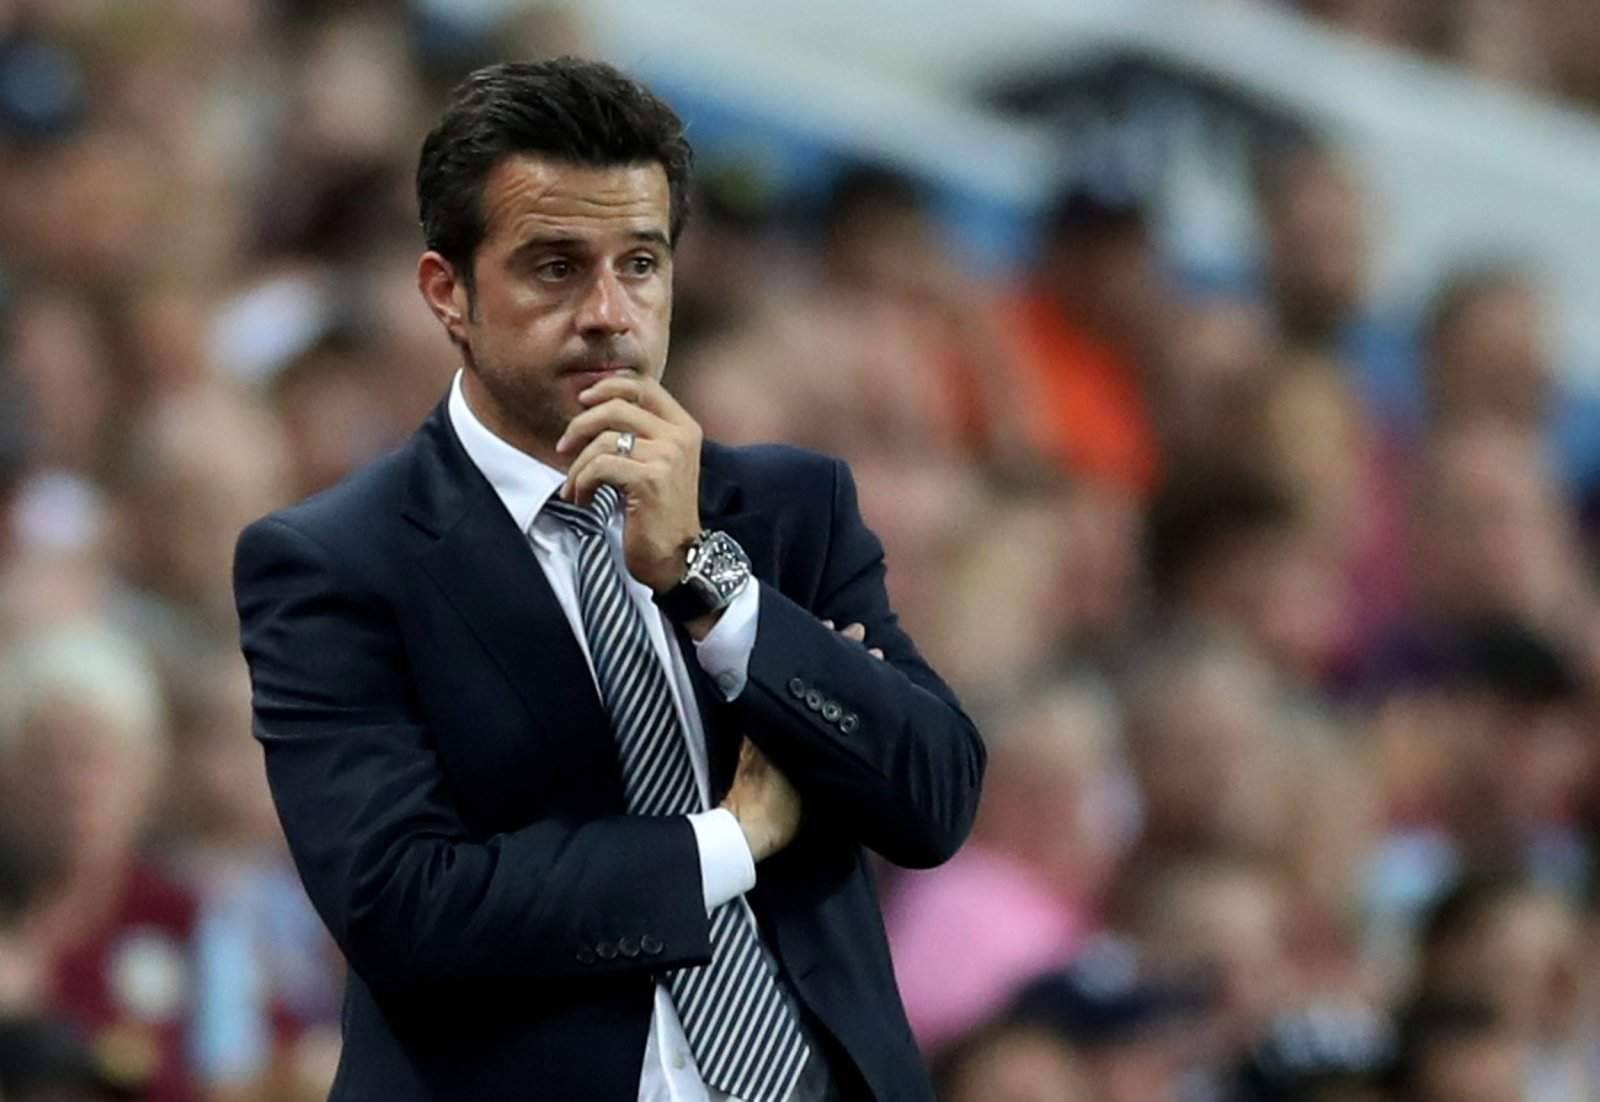 Everton: These fans loved Marco Silva's gesture